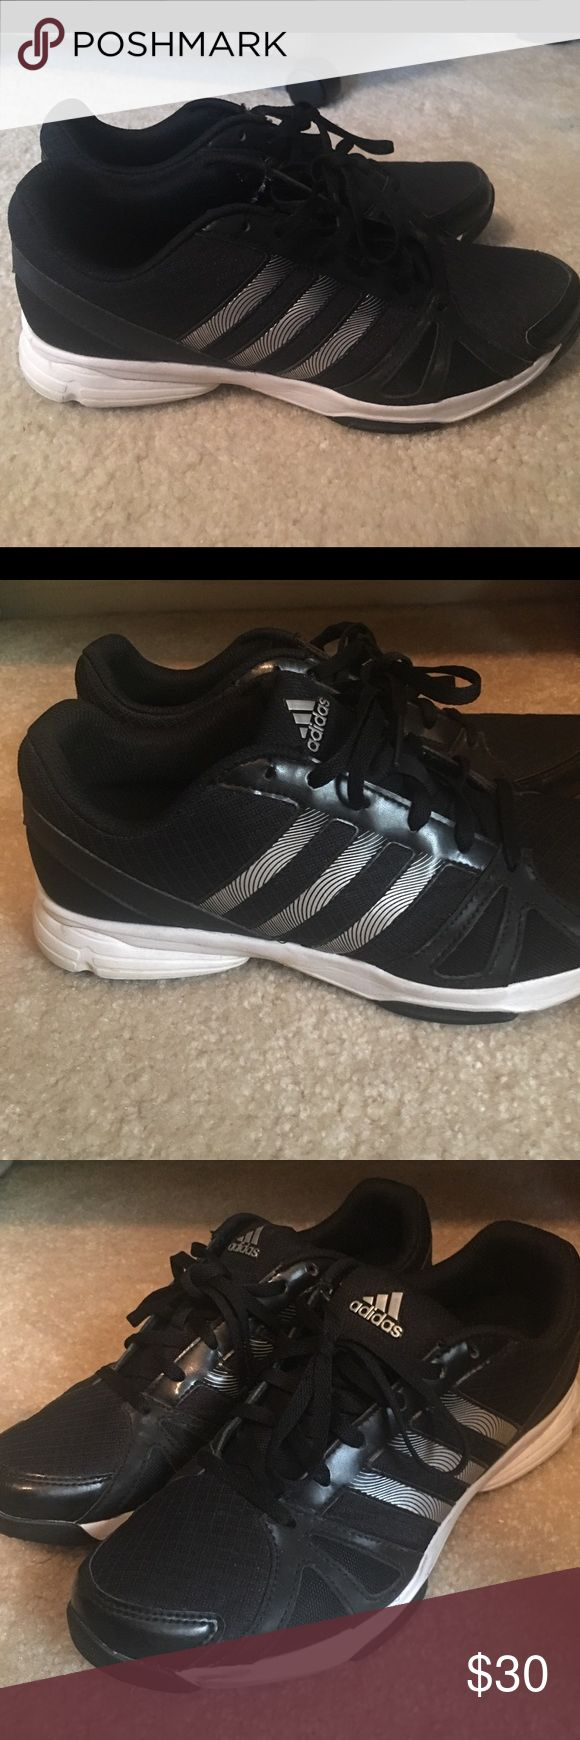 adidas womens shoes black and white adidas excellent condition adidas shoes athletic shoes